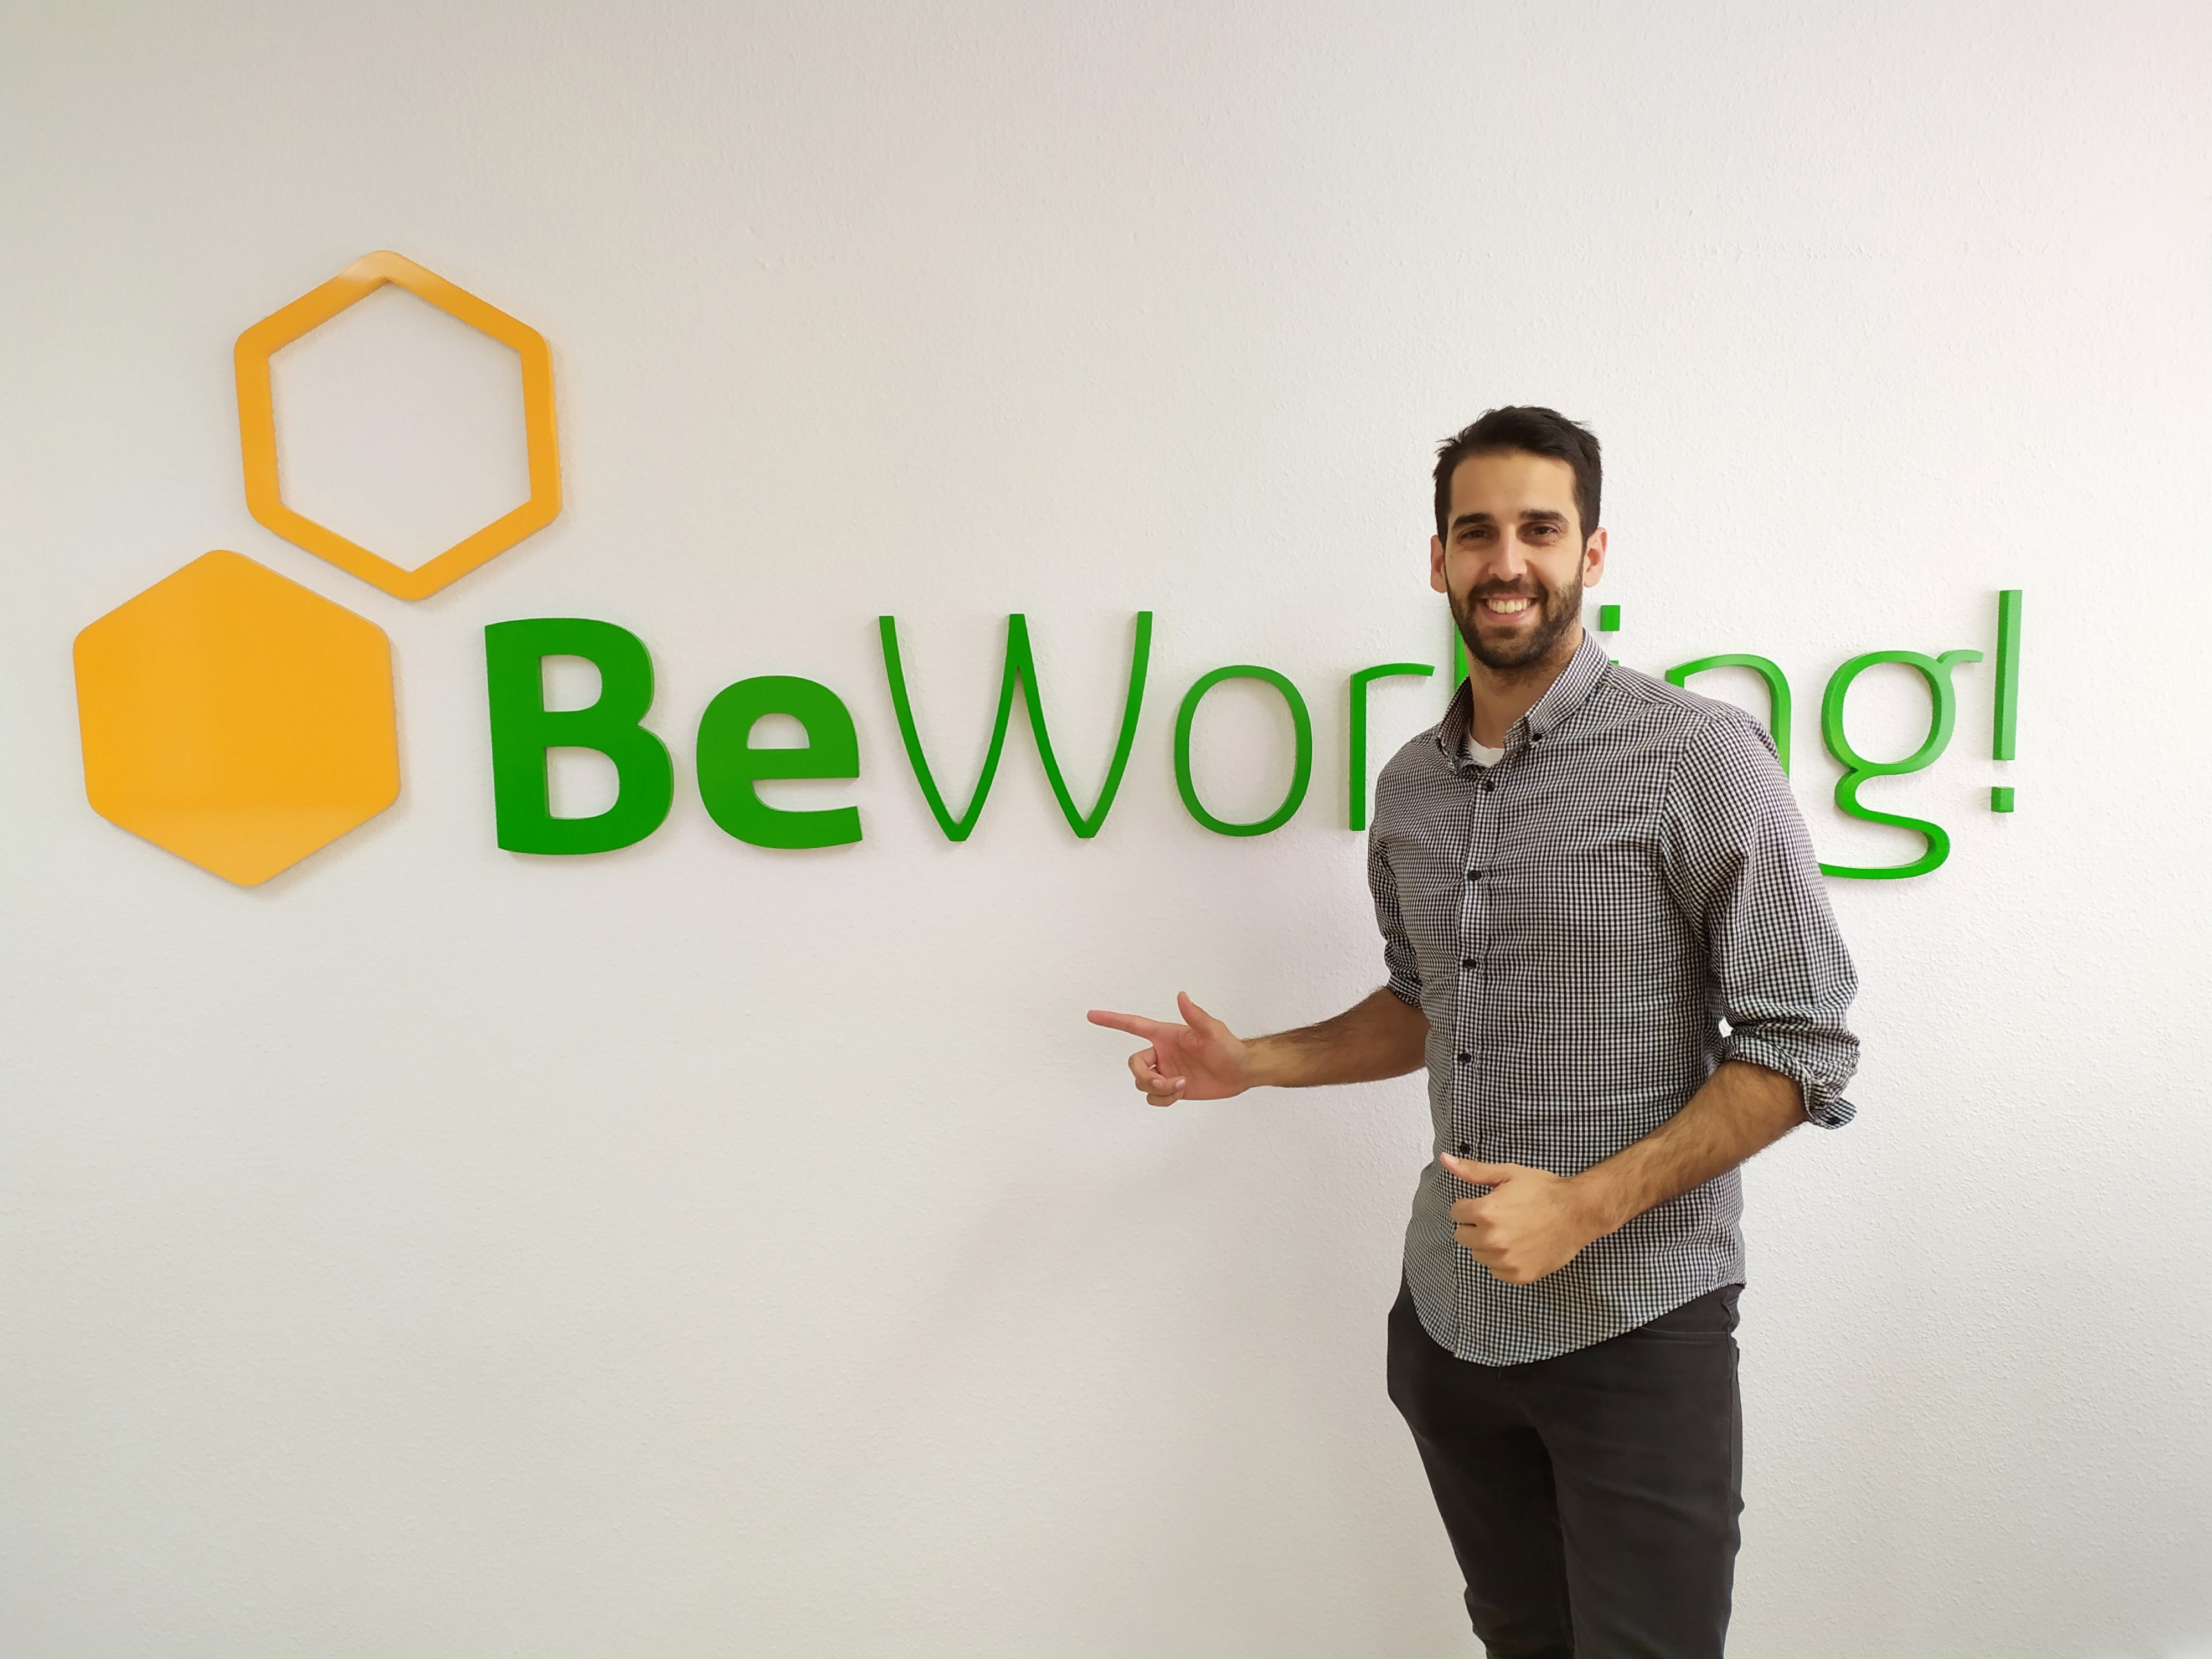 Alberto, Beworker malagueño y gestor de Marketing